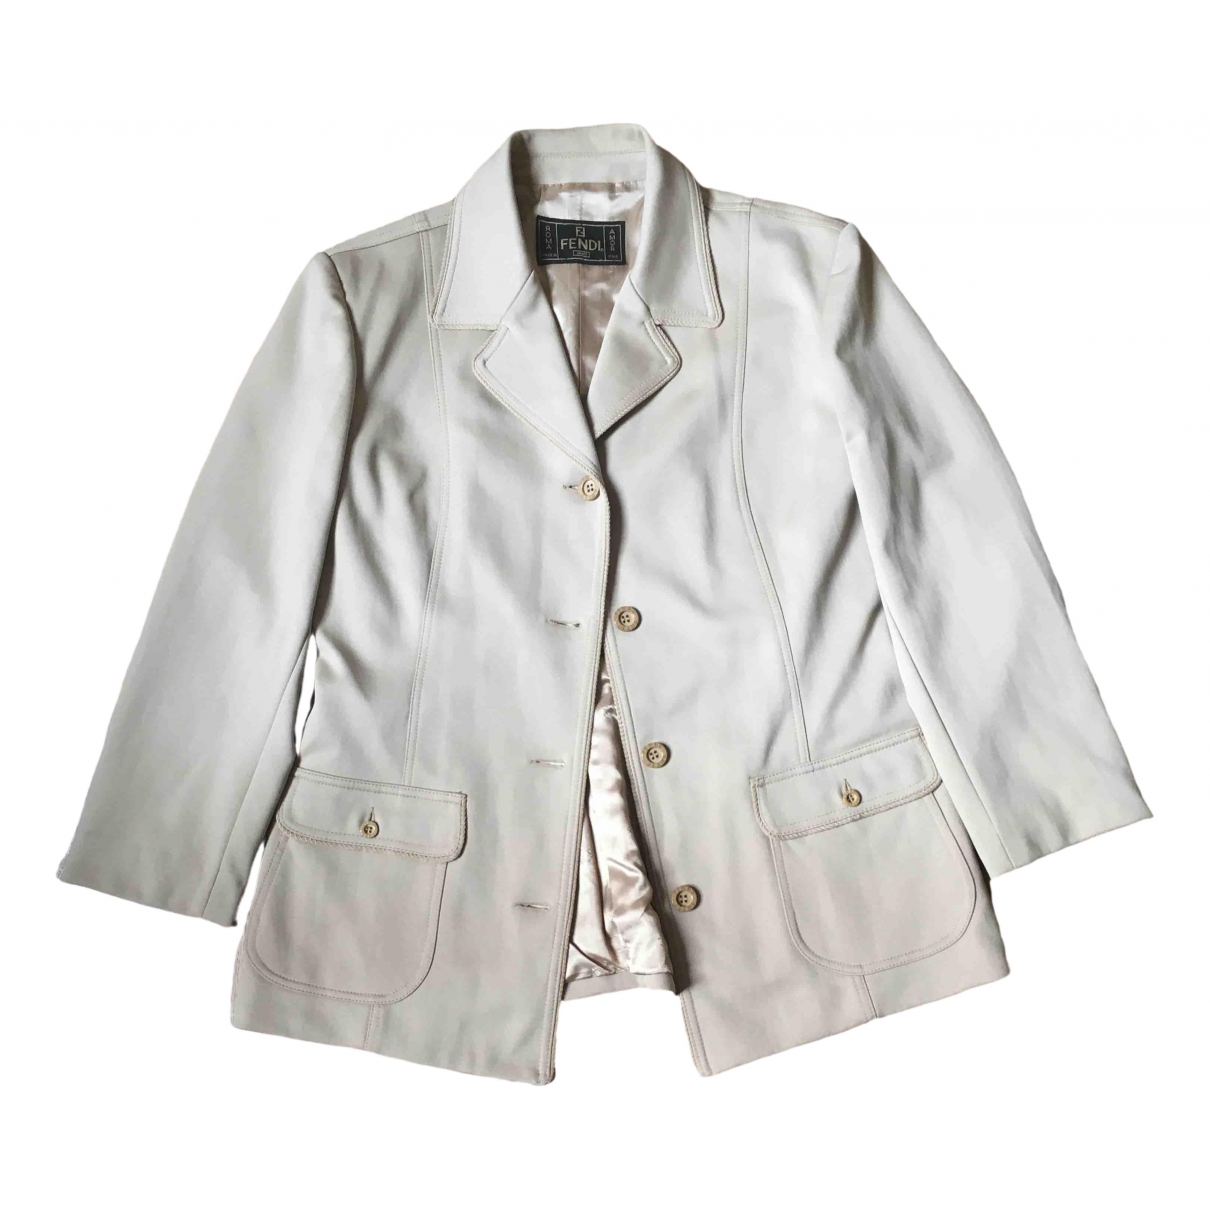 Fendi \N Ecru jacket for Women 48 IT